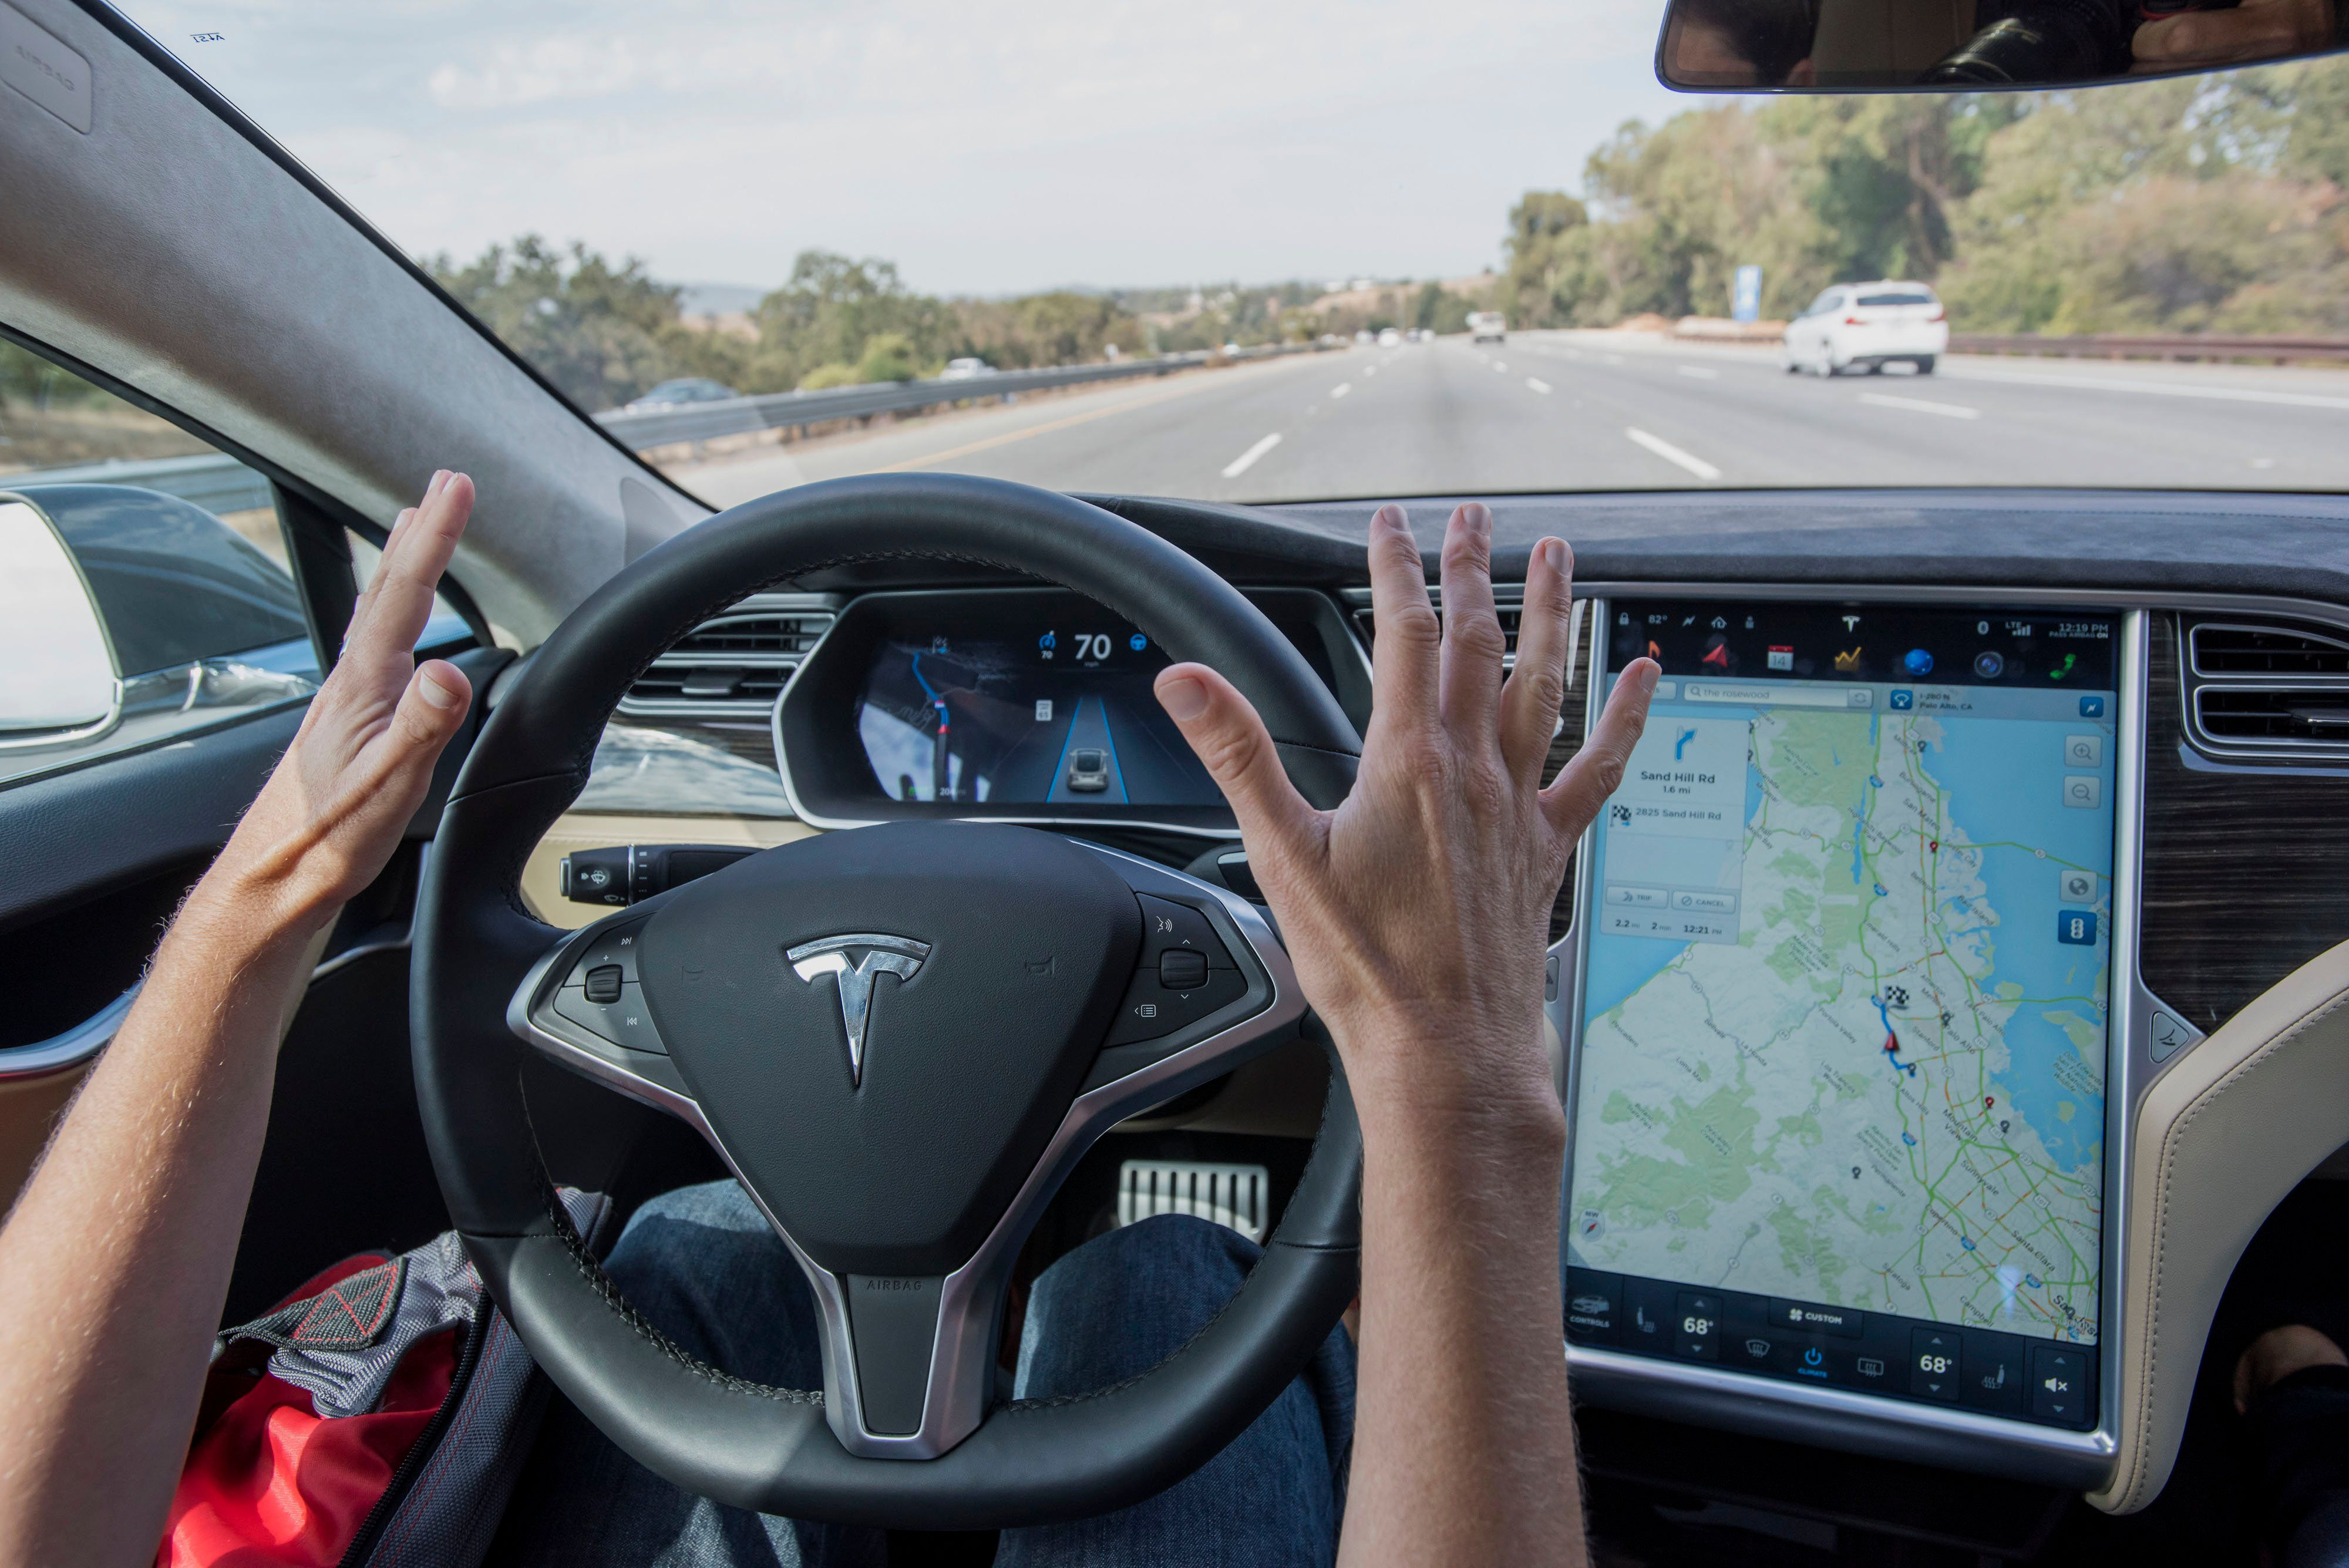 A member of the media test drives a Tesla Motors Inc. Model S car equipped with Autopilot in Palo Alto, California, U.S., on Wednesday, Oct. 14, 2015. Tesla Motors Inc. will begin rolling out the first version of its highly anticipated 'autopilot' features to owners of its all-electric Model S sedan Thursday. Autopilot is a step toward the vision of autonomous or self-driving cars, and includes features like automatic lane changing and the ability of the Model S to parallel park for you. Photographer: David Paul Morris/Bloomberg via Getty Images